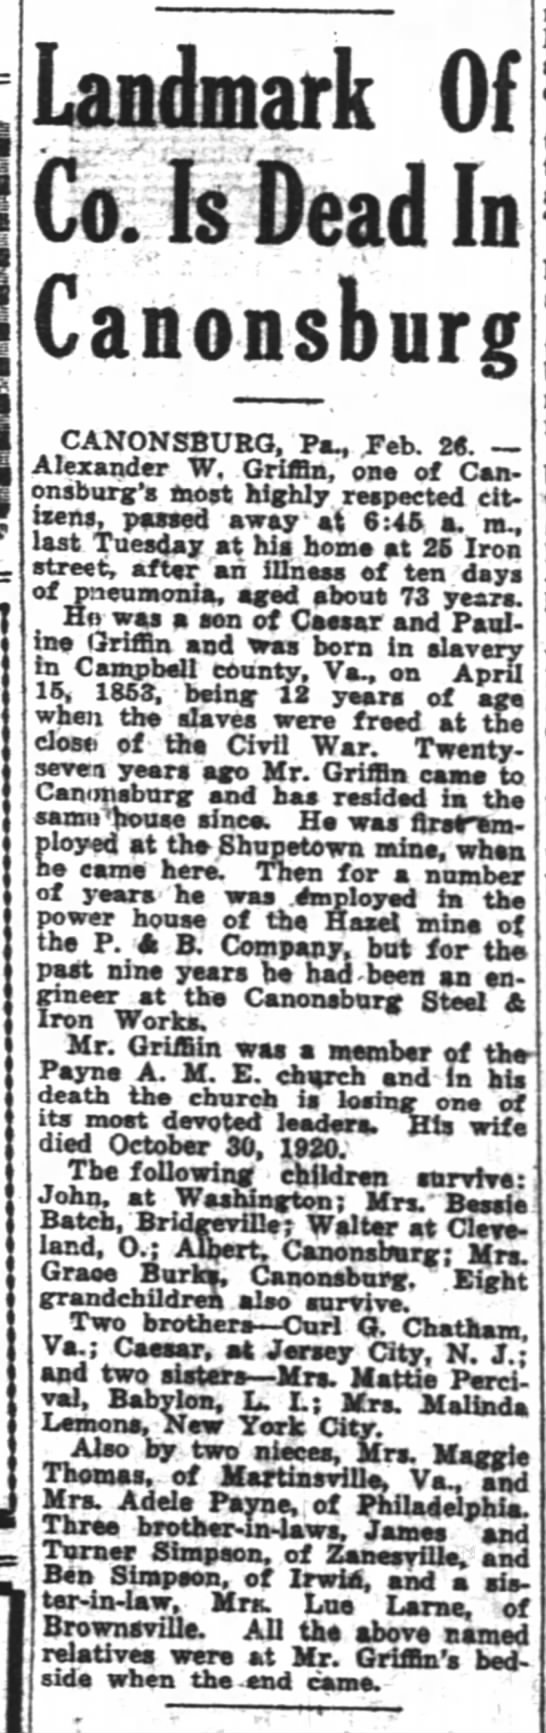 Griffin Alexander W Obituary 28 Feb 1925 The Pittsburgh Courier -